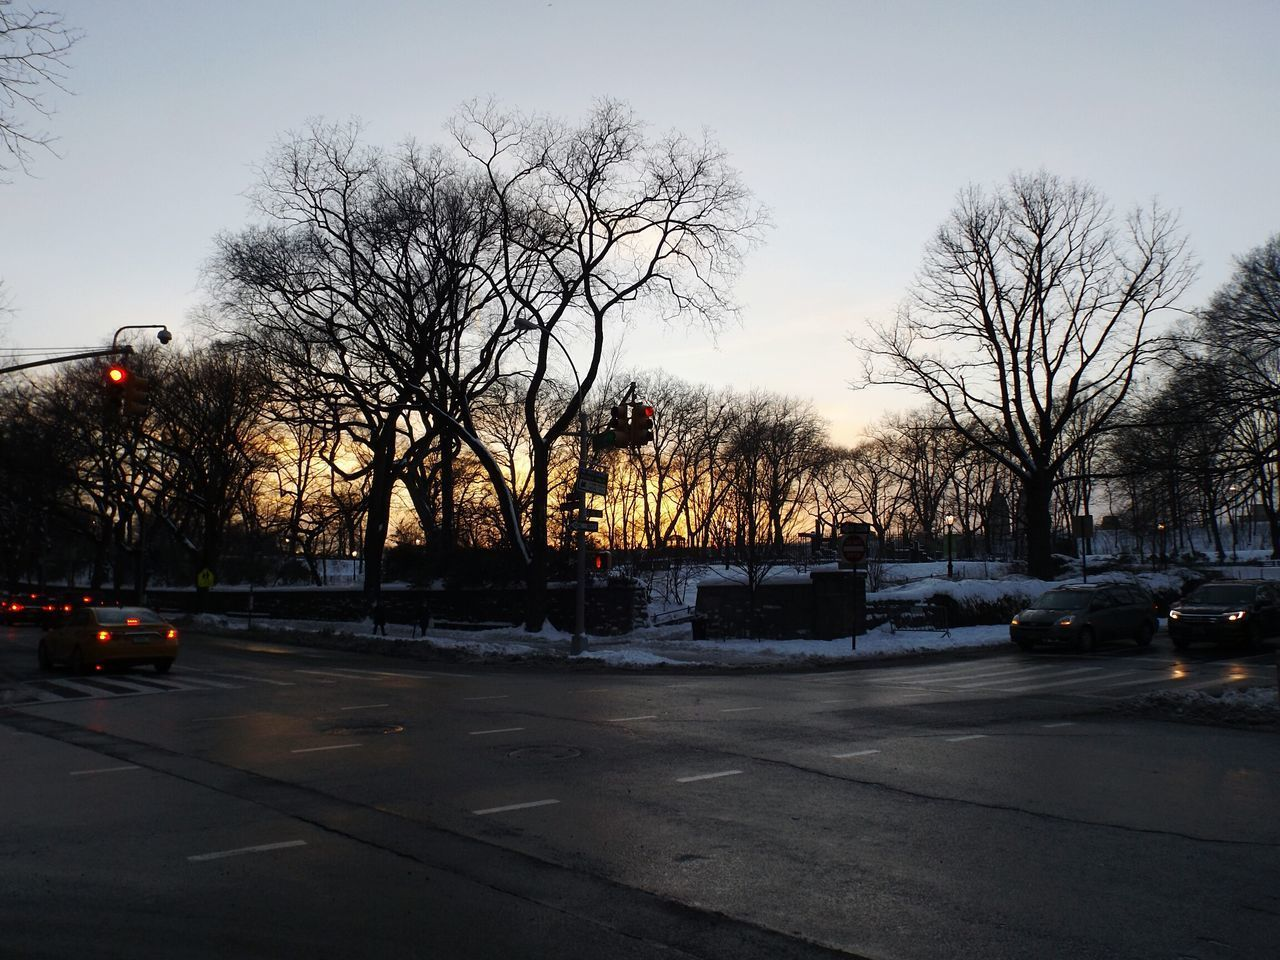 It was really nice to enjoy the sunset at central park. Sunset Tree Car Transportation No People Land Vehicle Road Wet Sky Illuminated City Outdoors Nature Day Park Central Park New York City Crossroads Red Light Traffic Lights